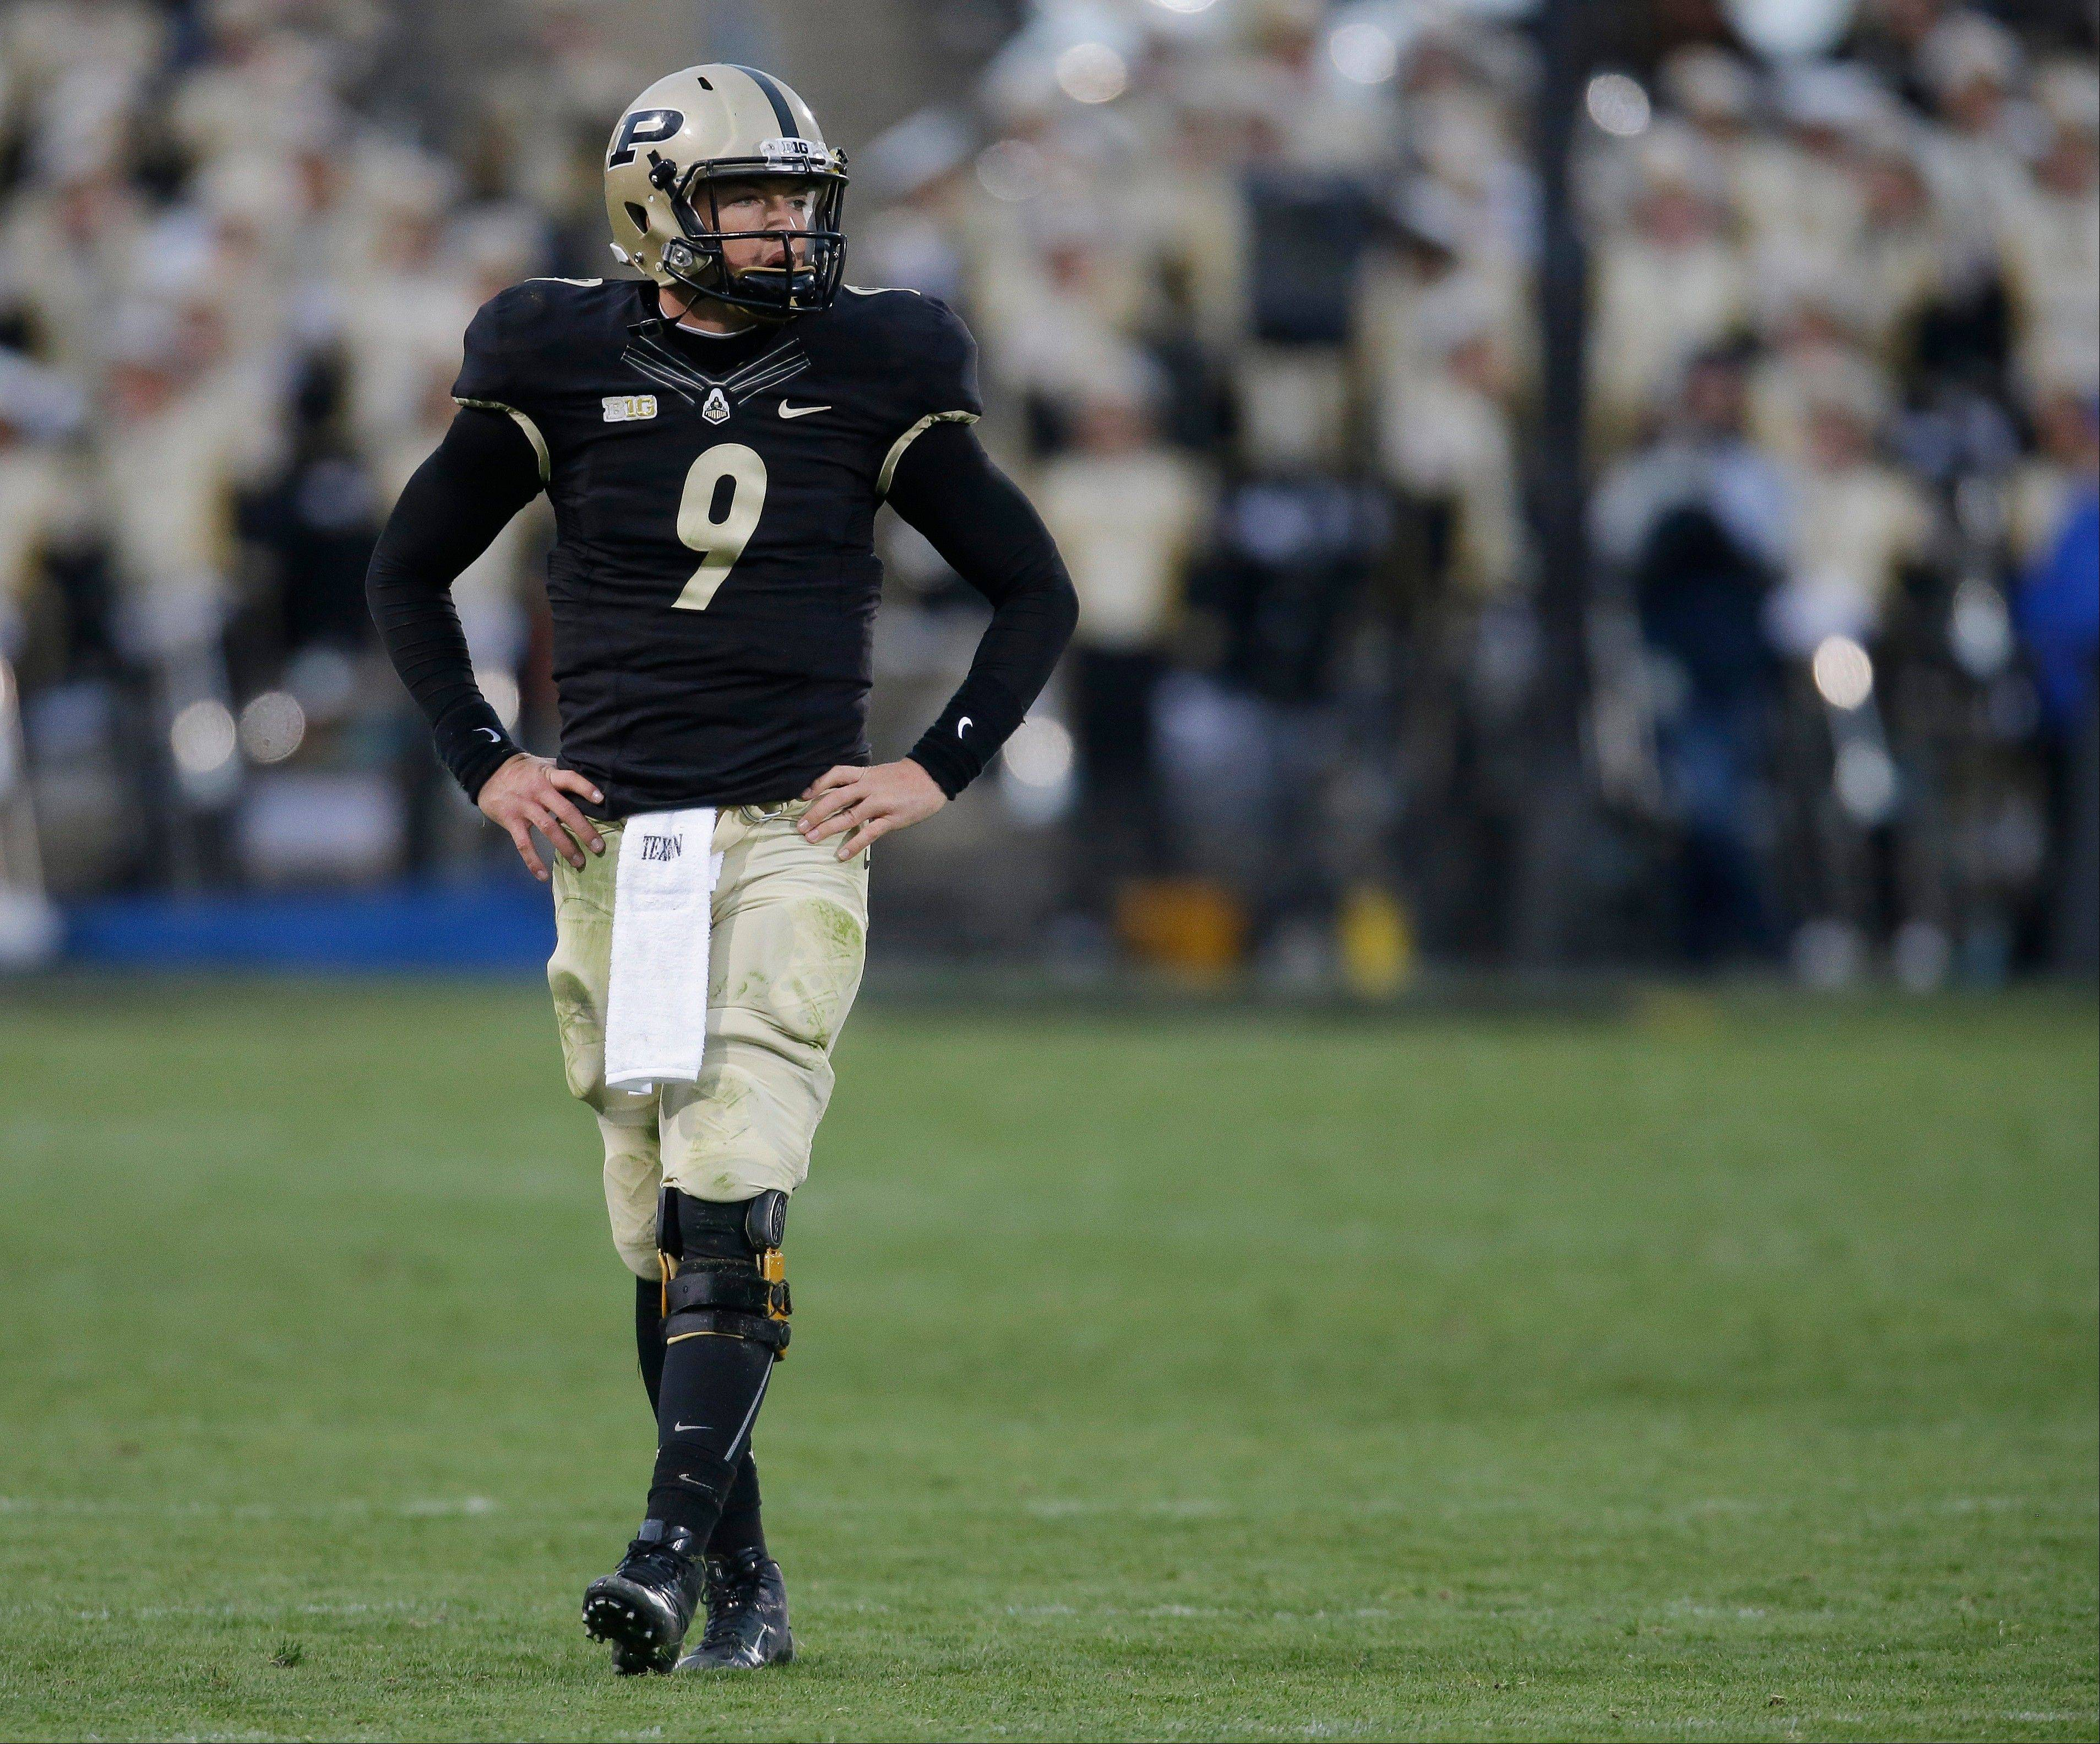 Purdue quarterback Robert Marve walks off field Saturday following a Purdue turnover during the second half against Penn State in West Lafayette, Ind. Penn State defeated Purdue 34-9.